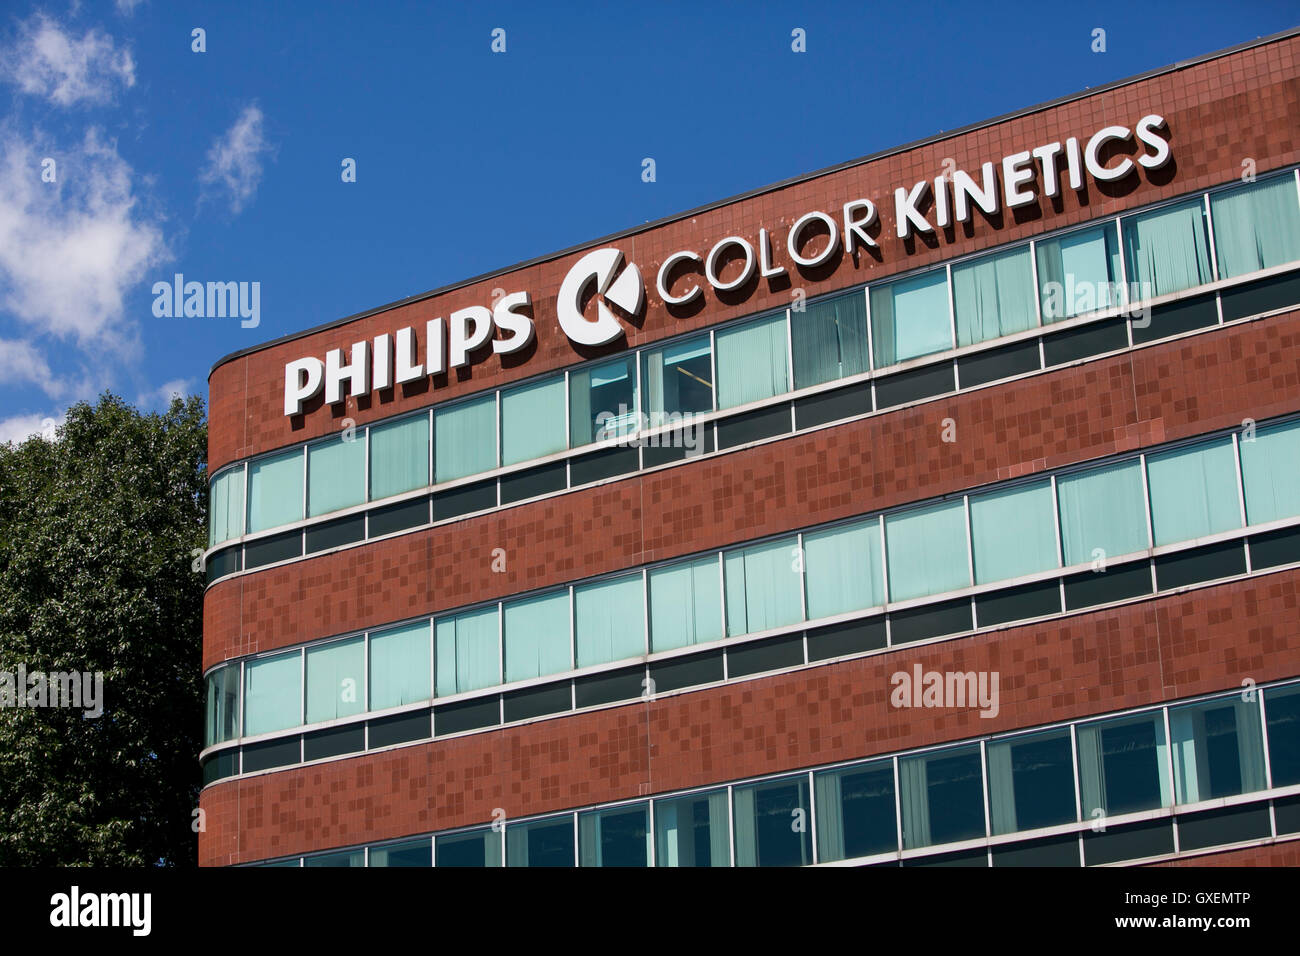 A logo sign outside of the headquarters of Philips Color Kinetics in Burlington, Massachusetts on August 14, 2016. - Stock Image